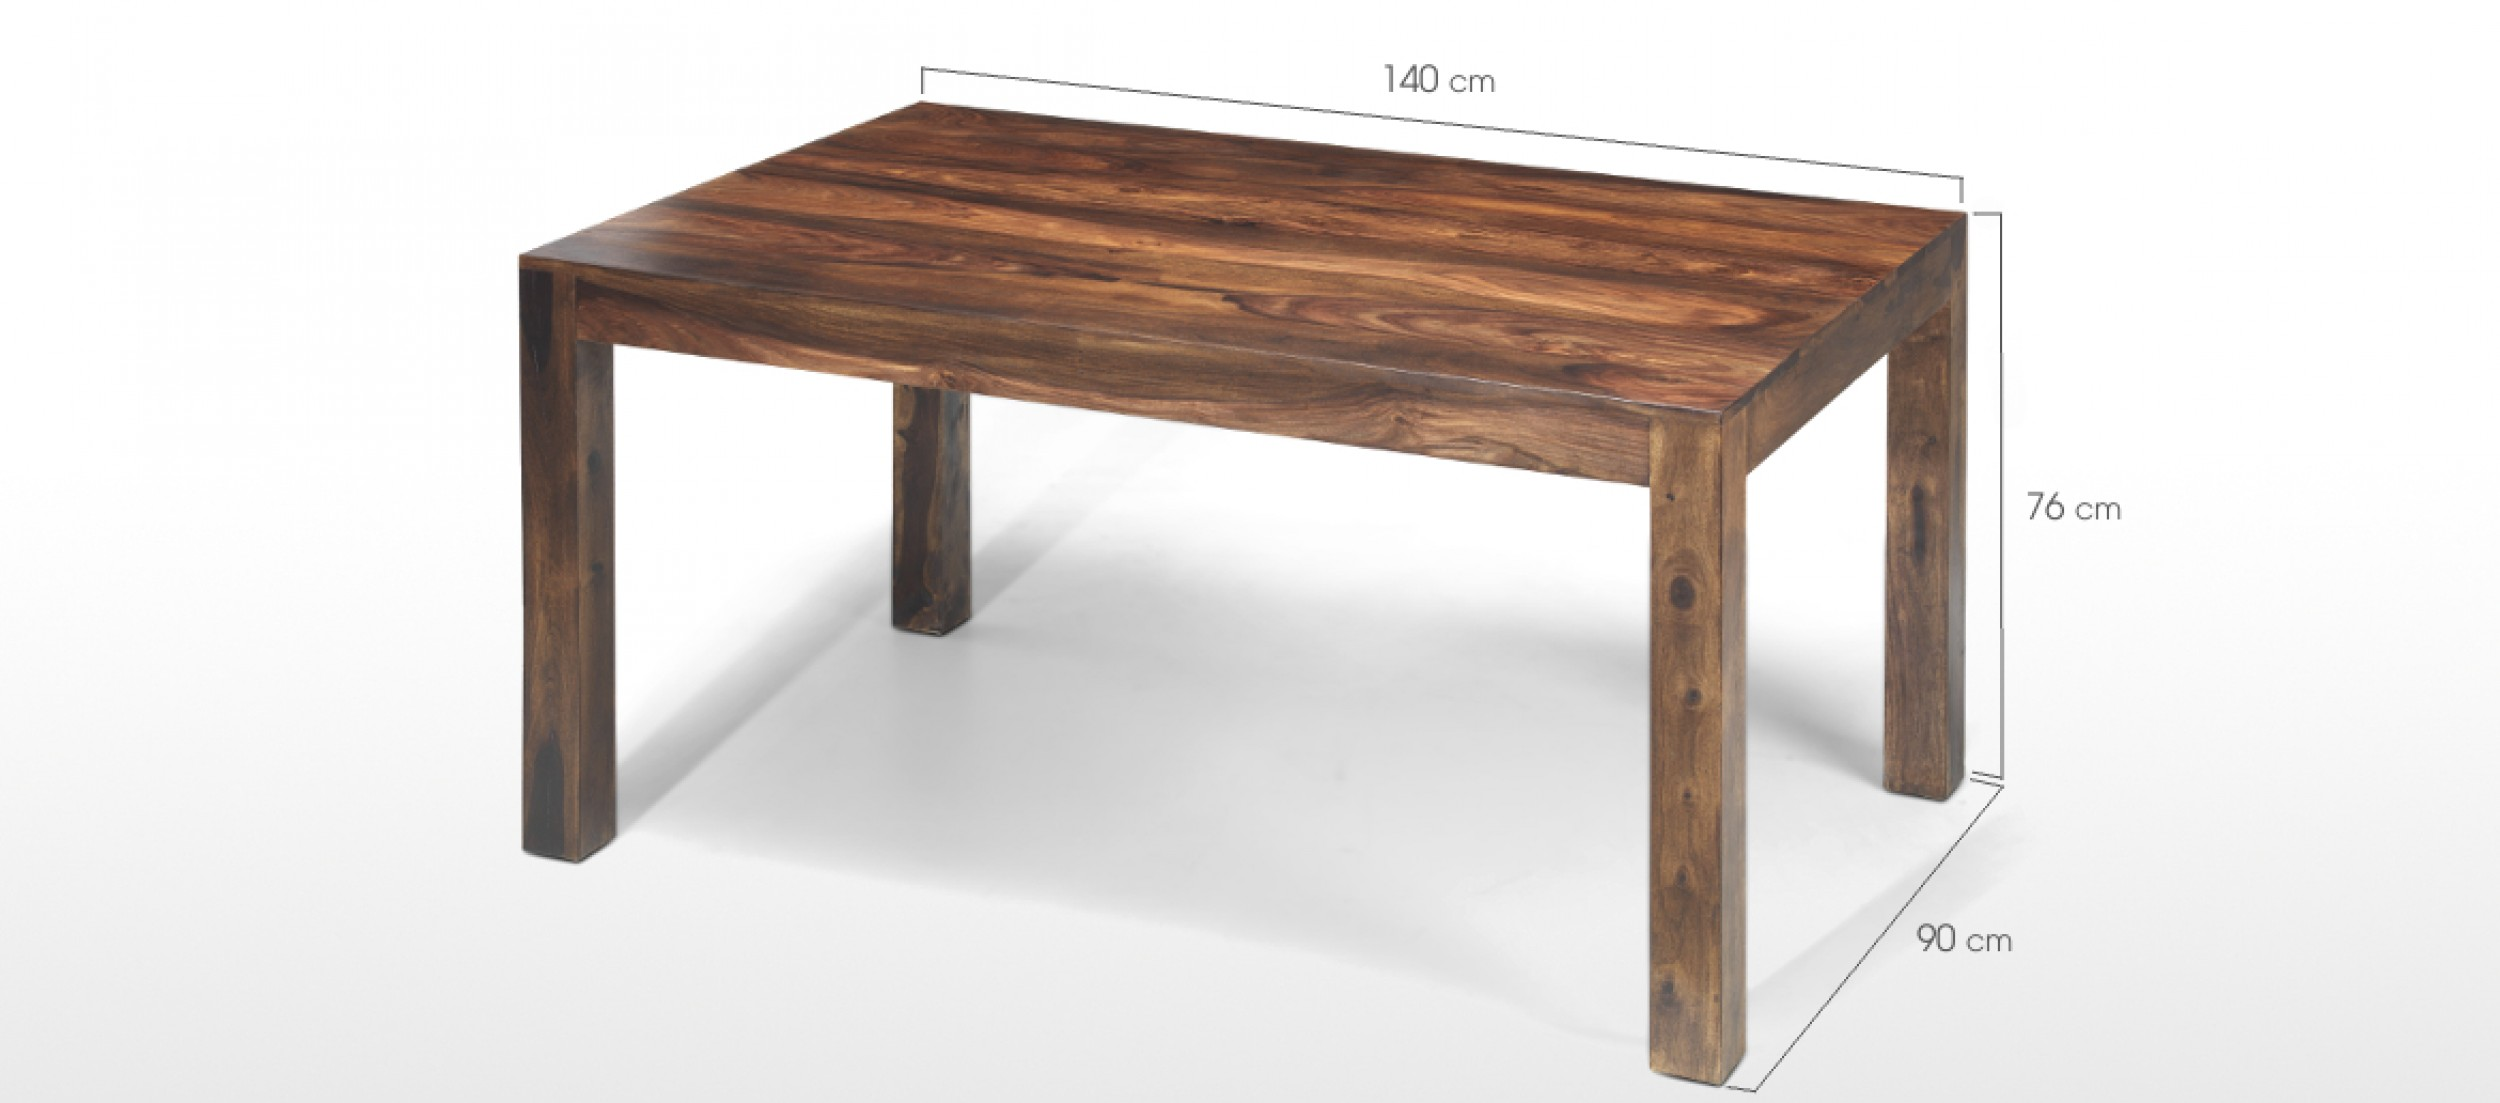 Cube sheesham 140 cm dining table quercus living for Dining table specifications